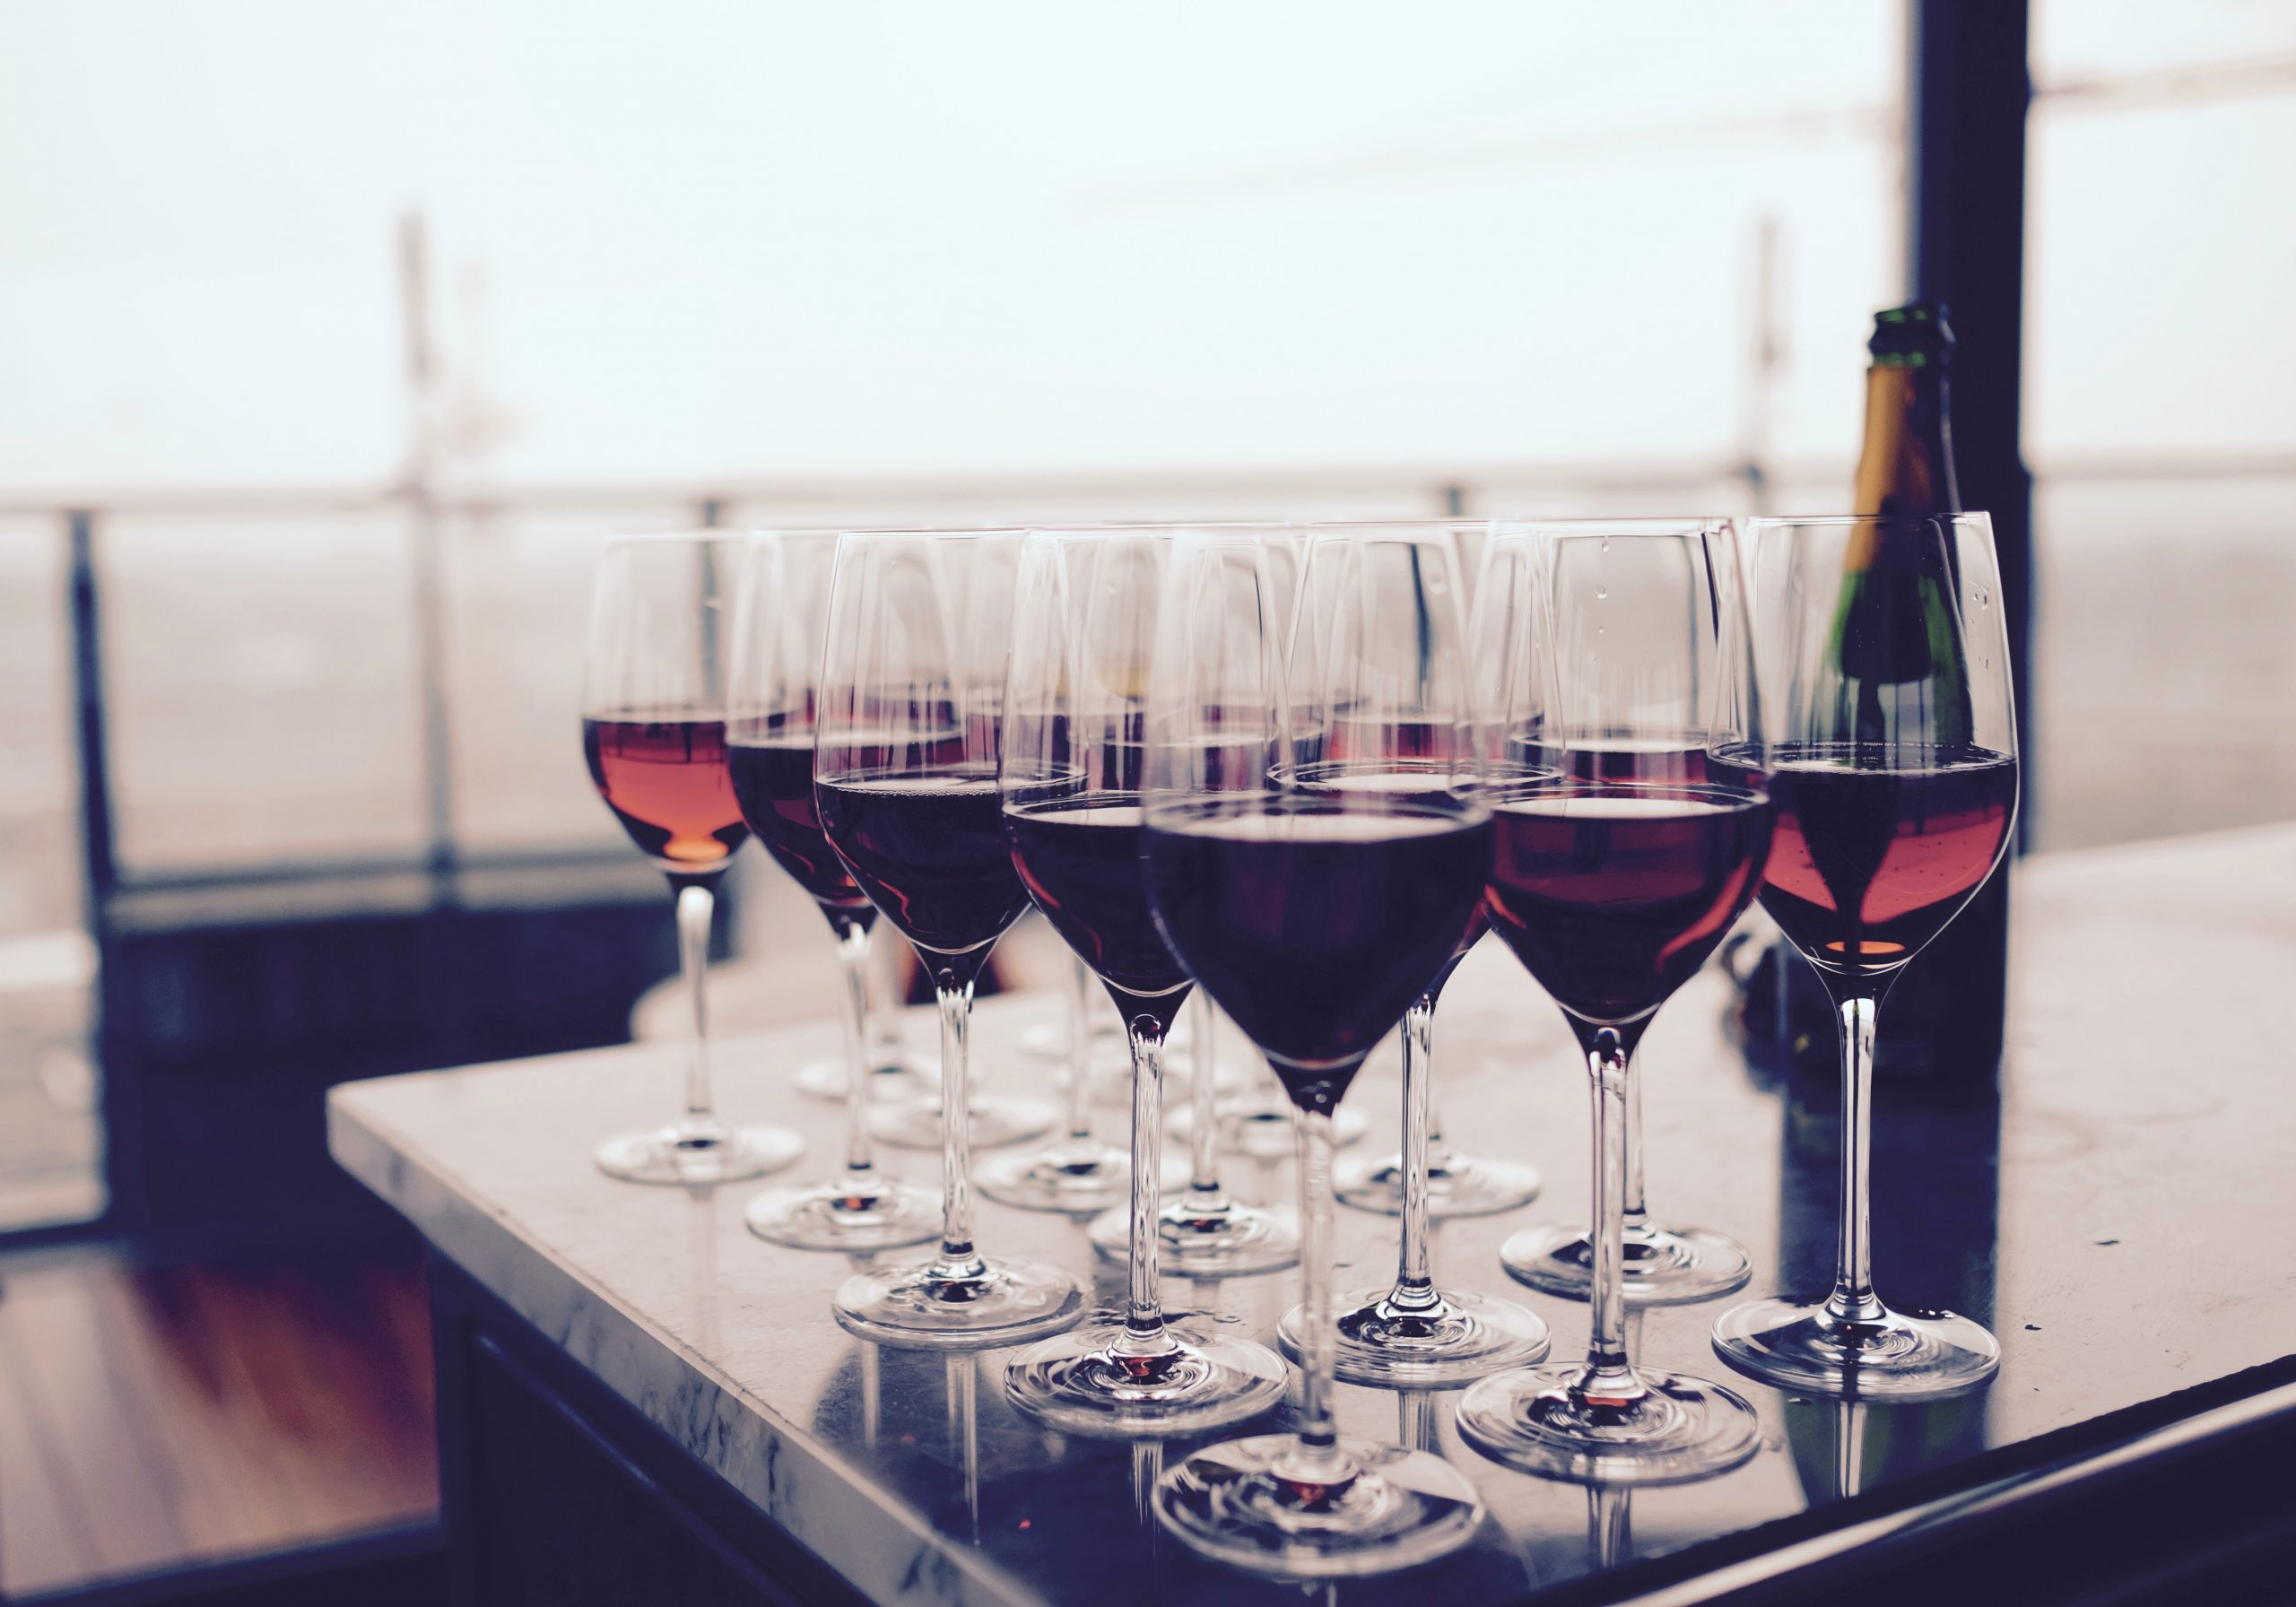 Wine glasses. Learn how to pack glass effectively for your next move.